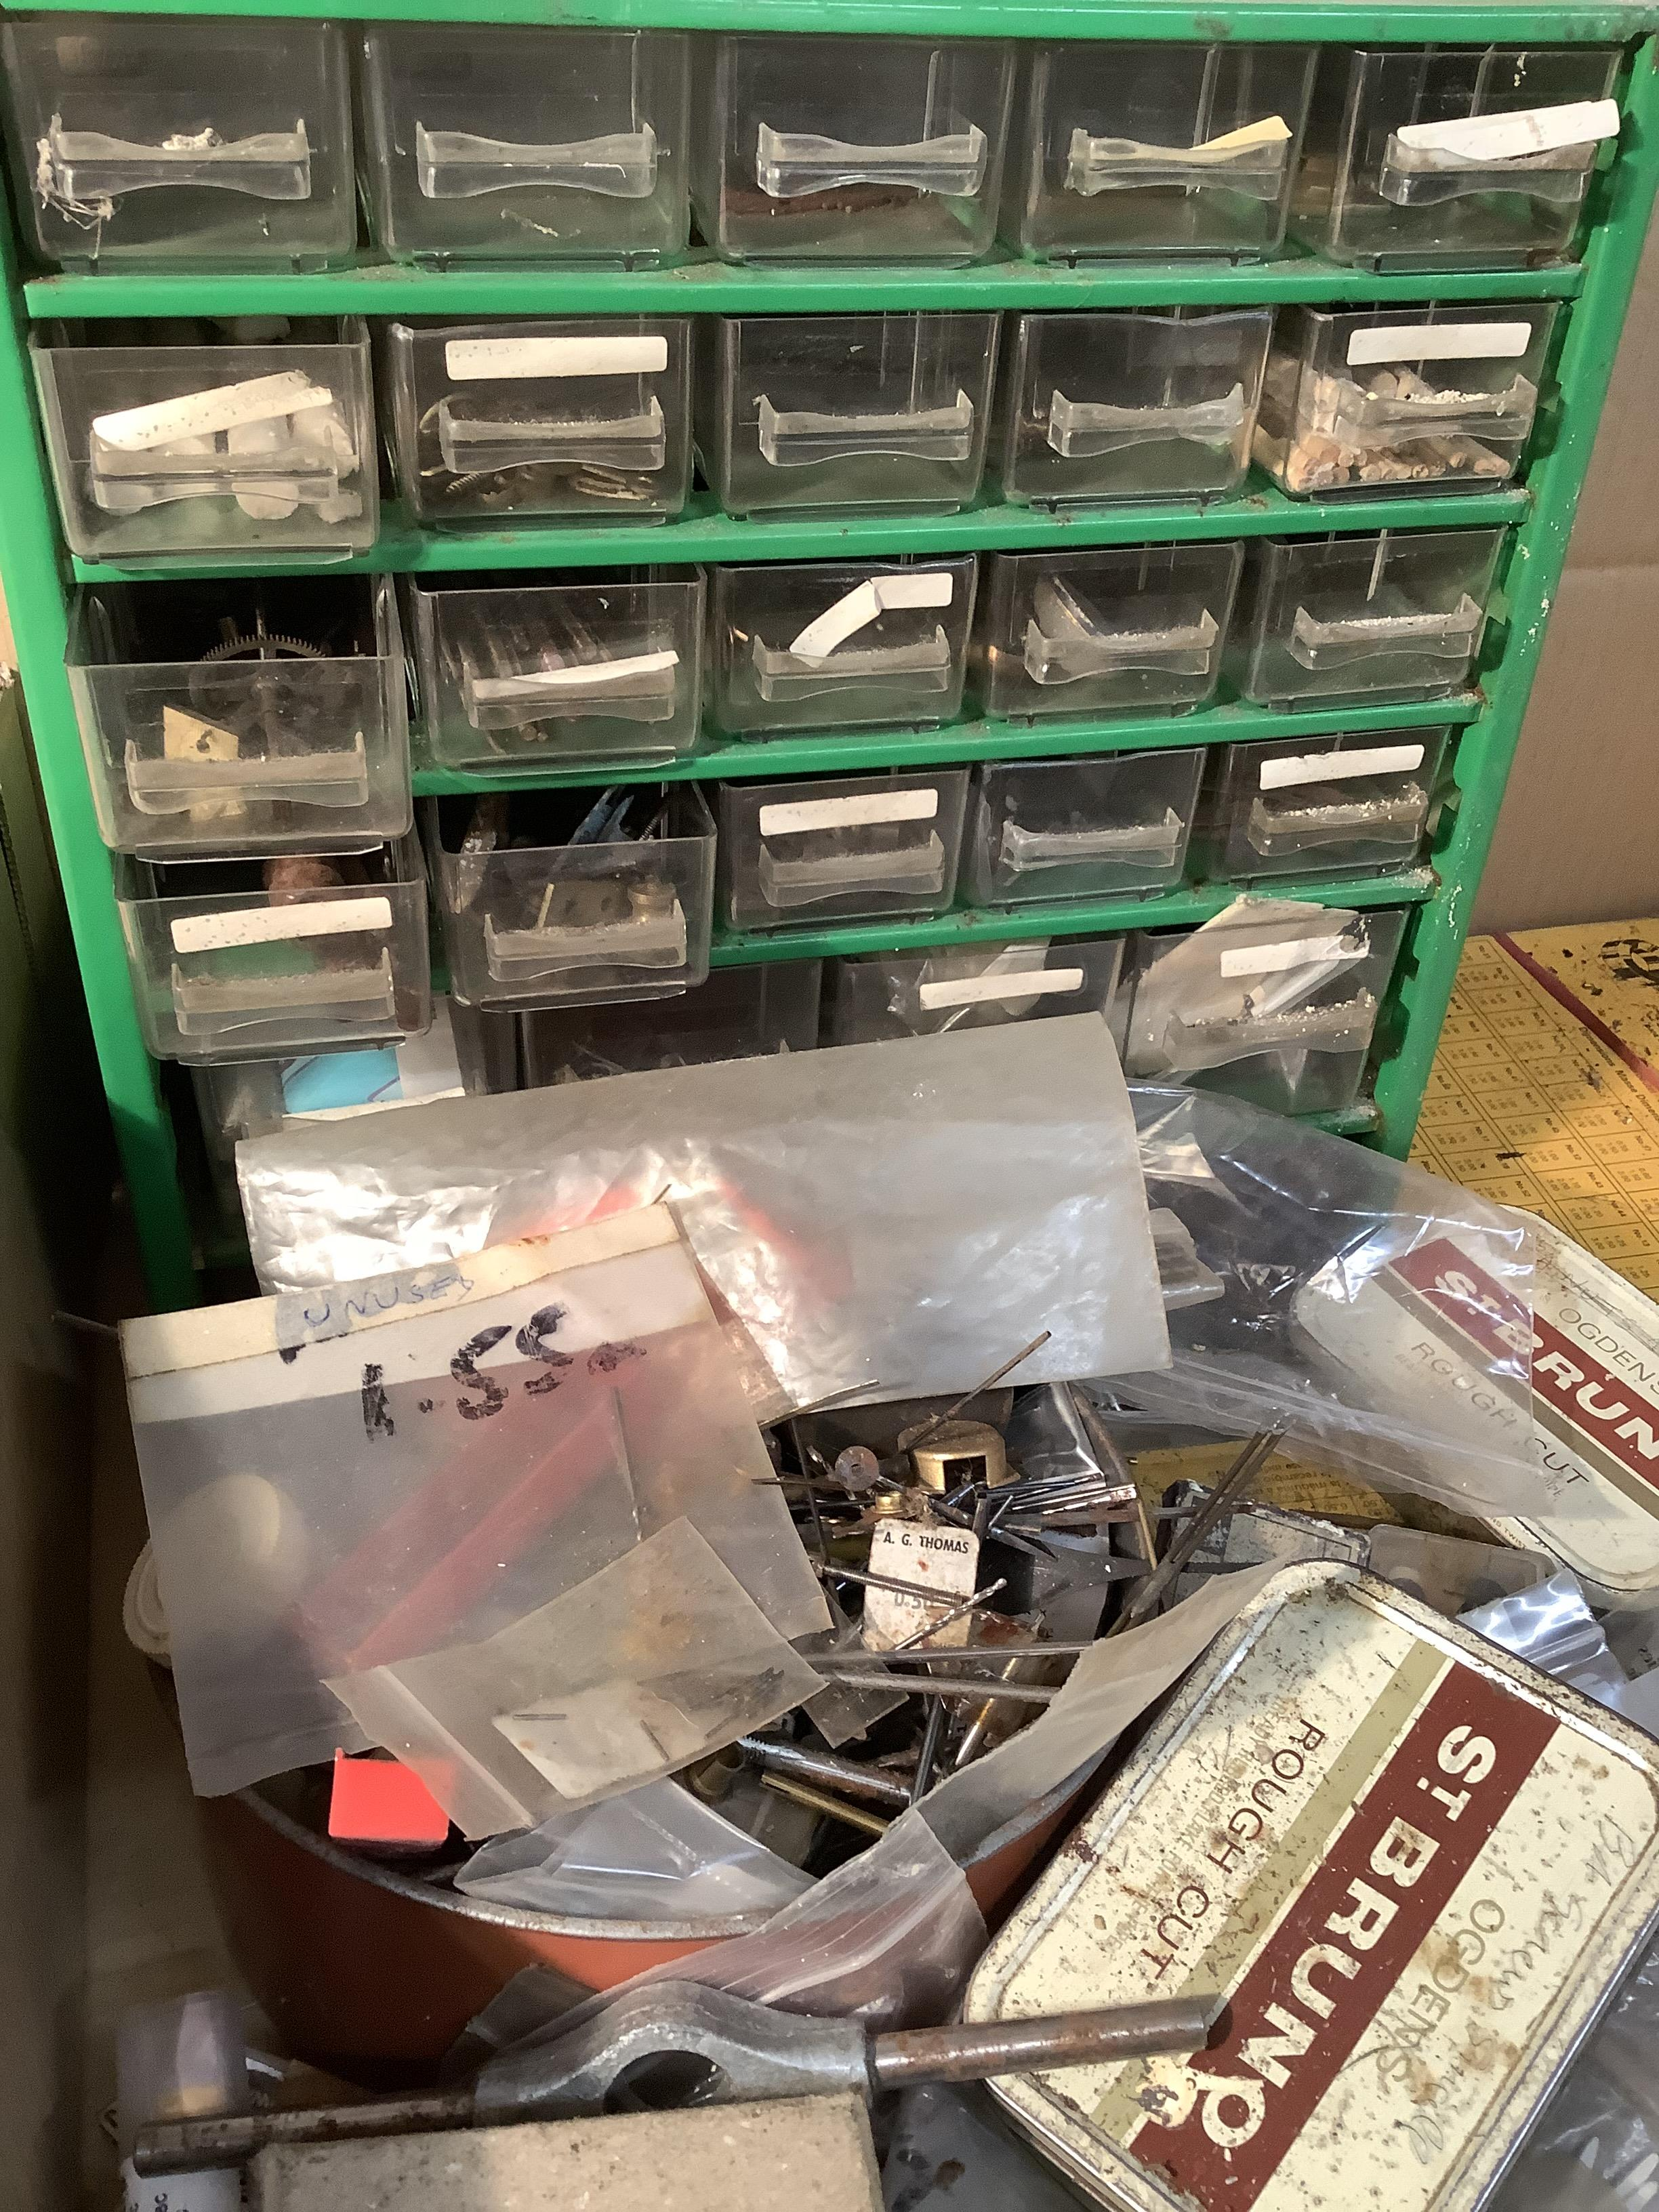 A quantity of horological spares including brass bushes, brass pin, case screws and parts, clock